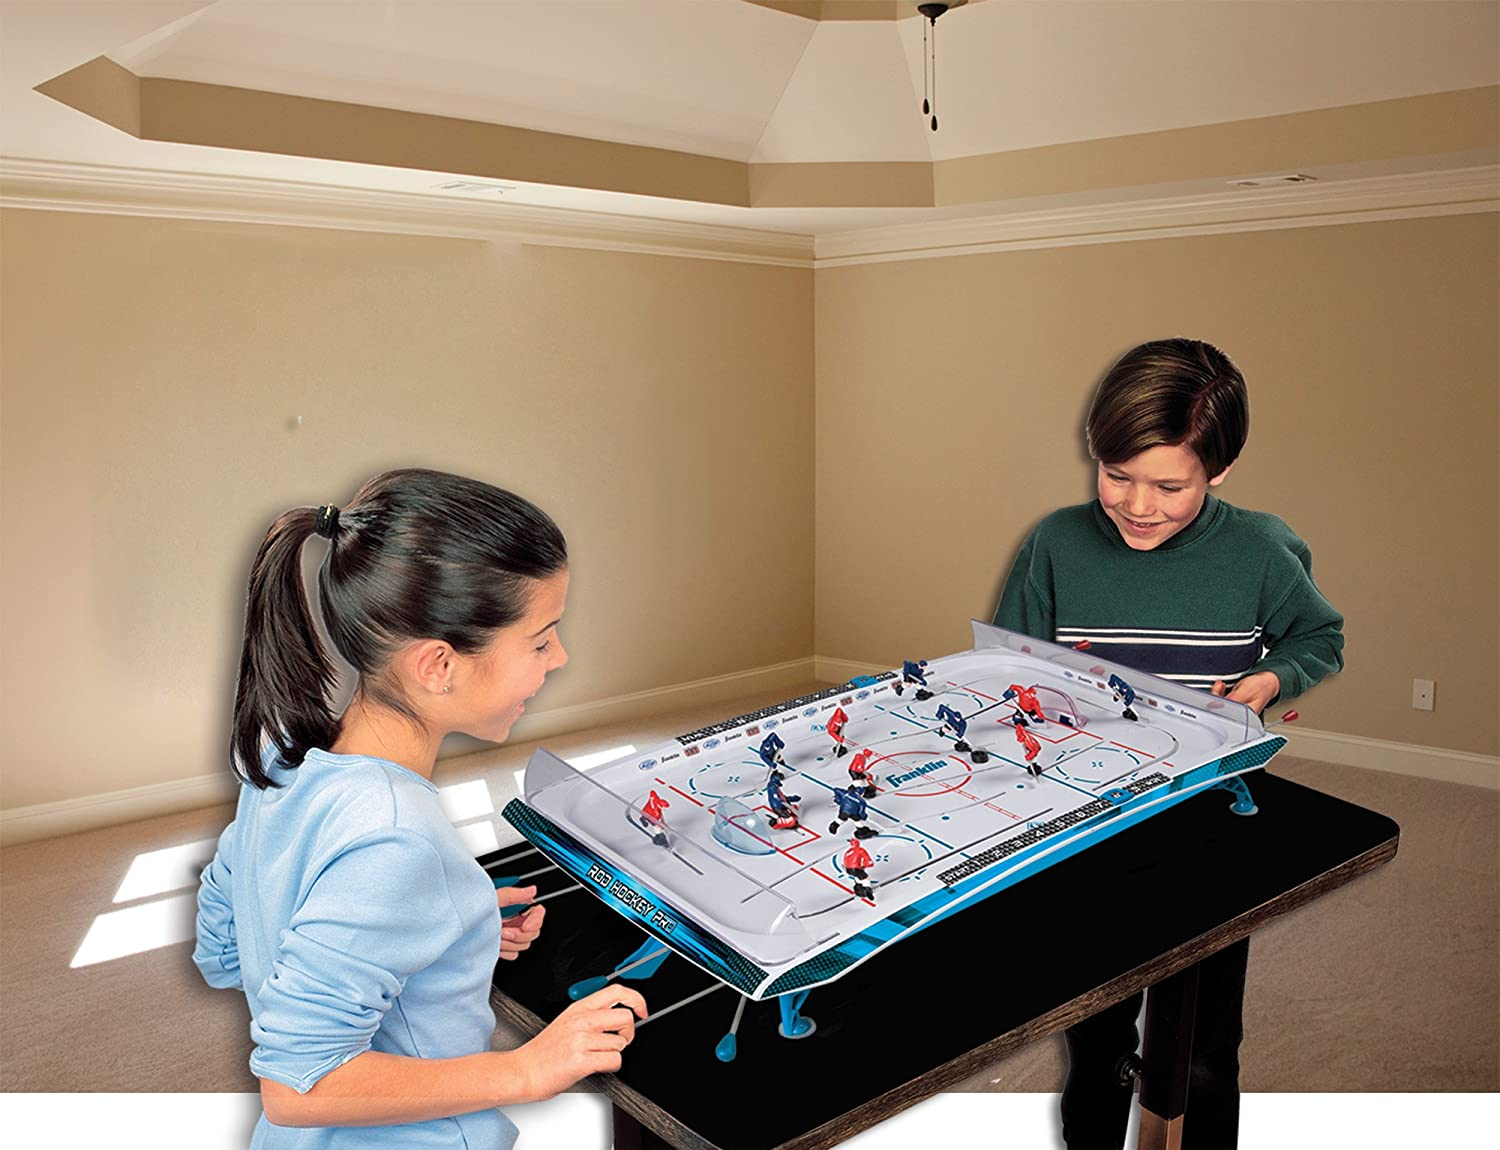 Franklin Sports Rod Hockey Pro : Air Hockey Equipment : Sports & Outdoors